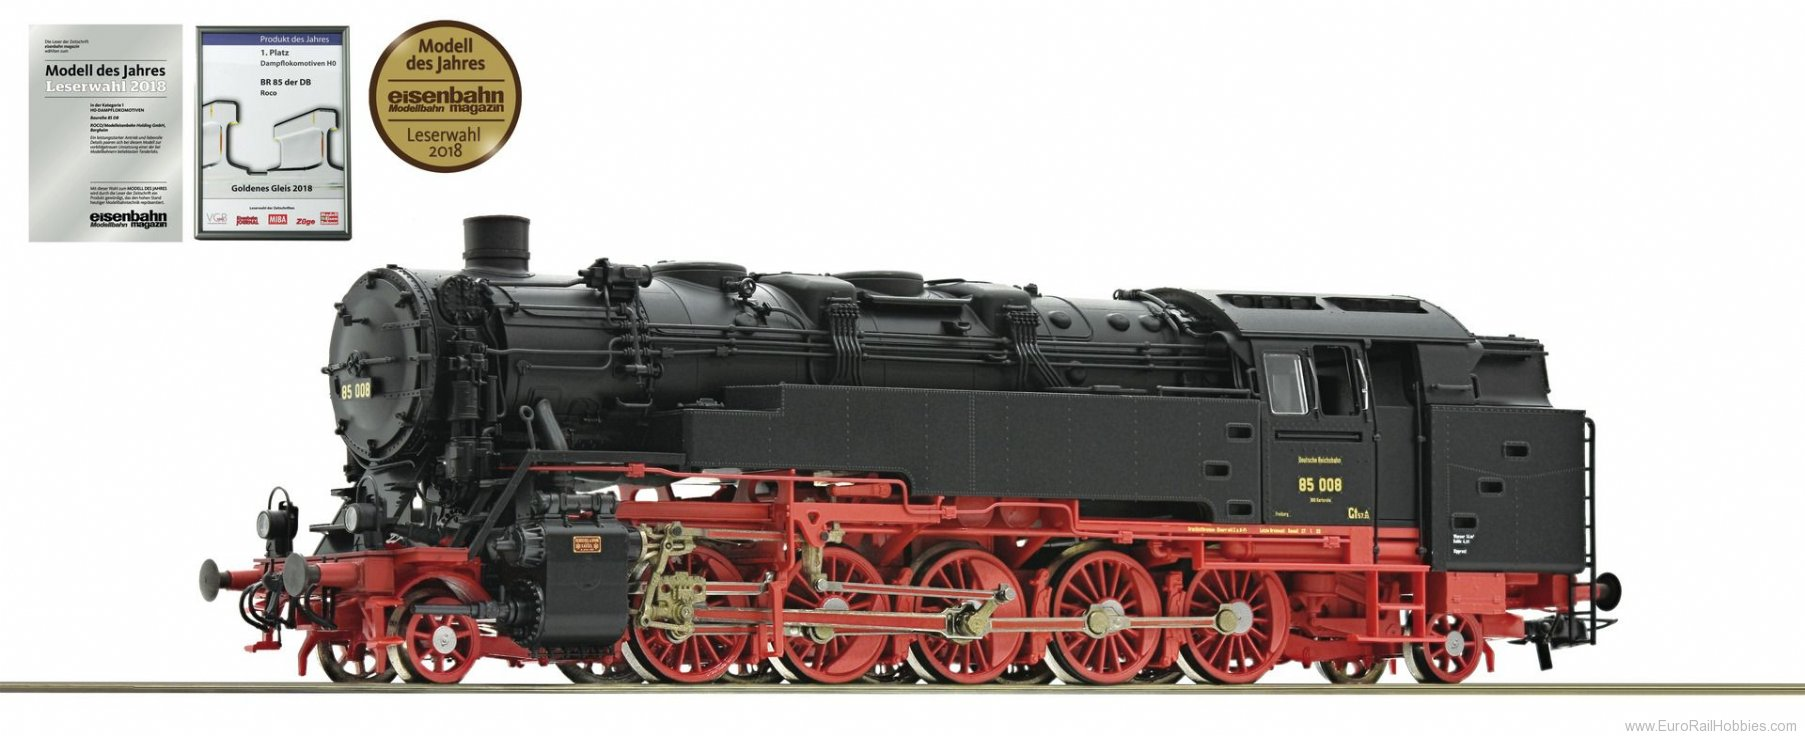 Roco 78262 DRG 85 008 Steam Locomotive (Marklin AC Digit